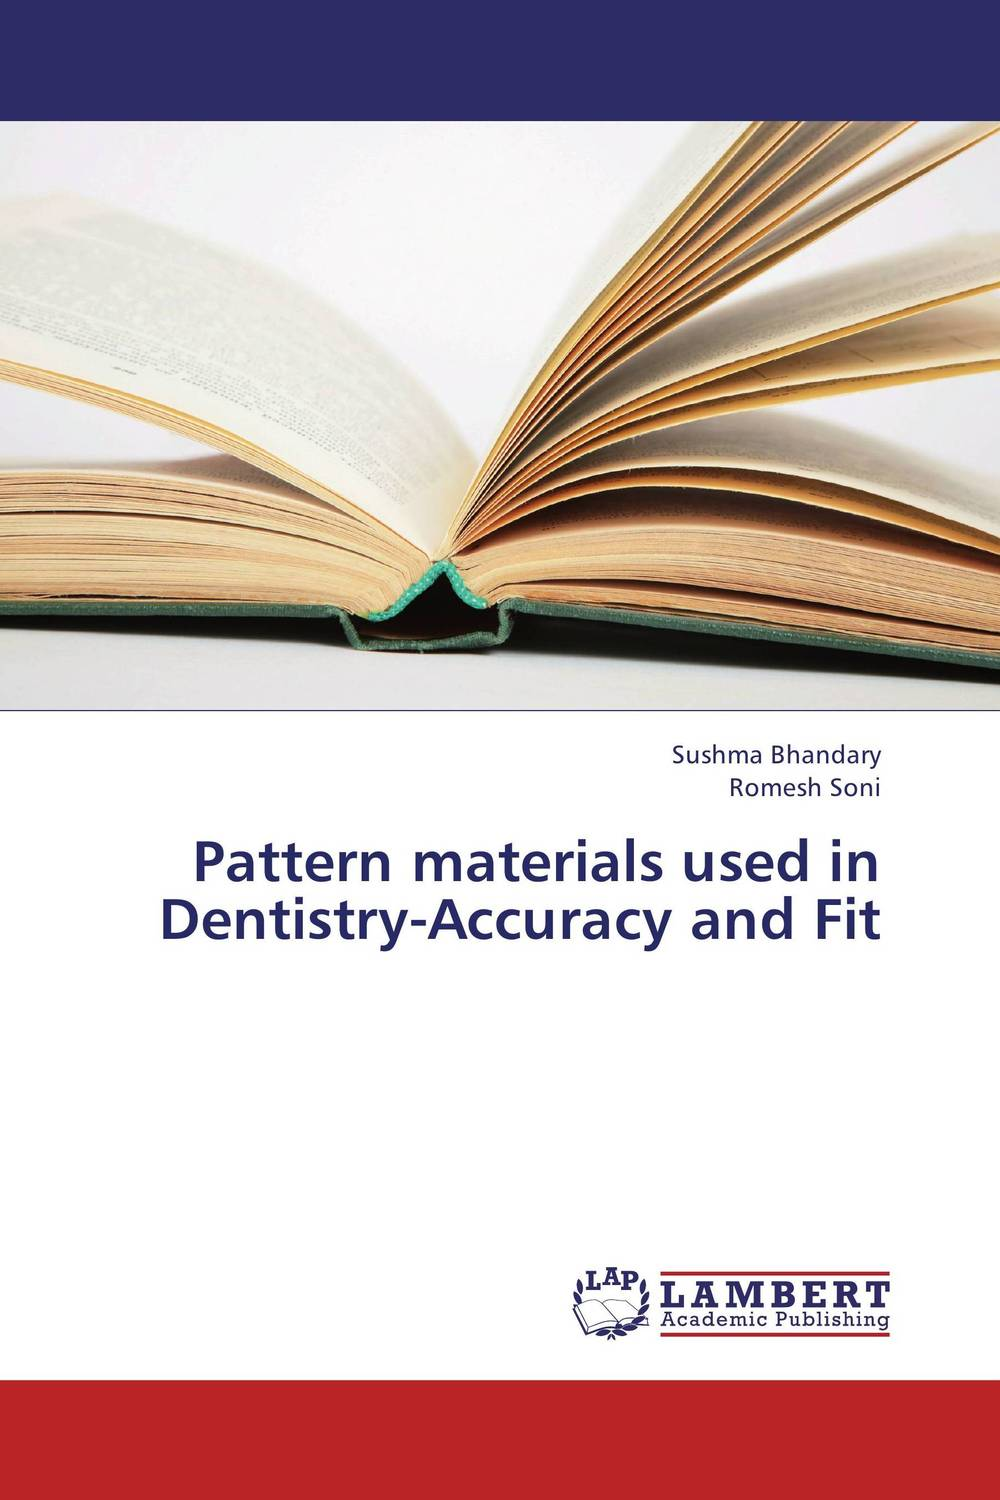 Pattern materials used in Dentistry-Accuracy and Fit чехол ibox blaze для apple iphone 7 silver